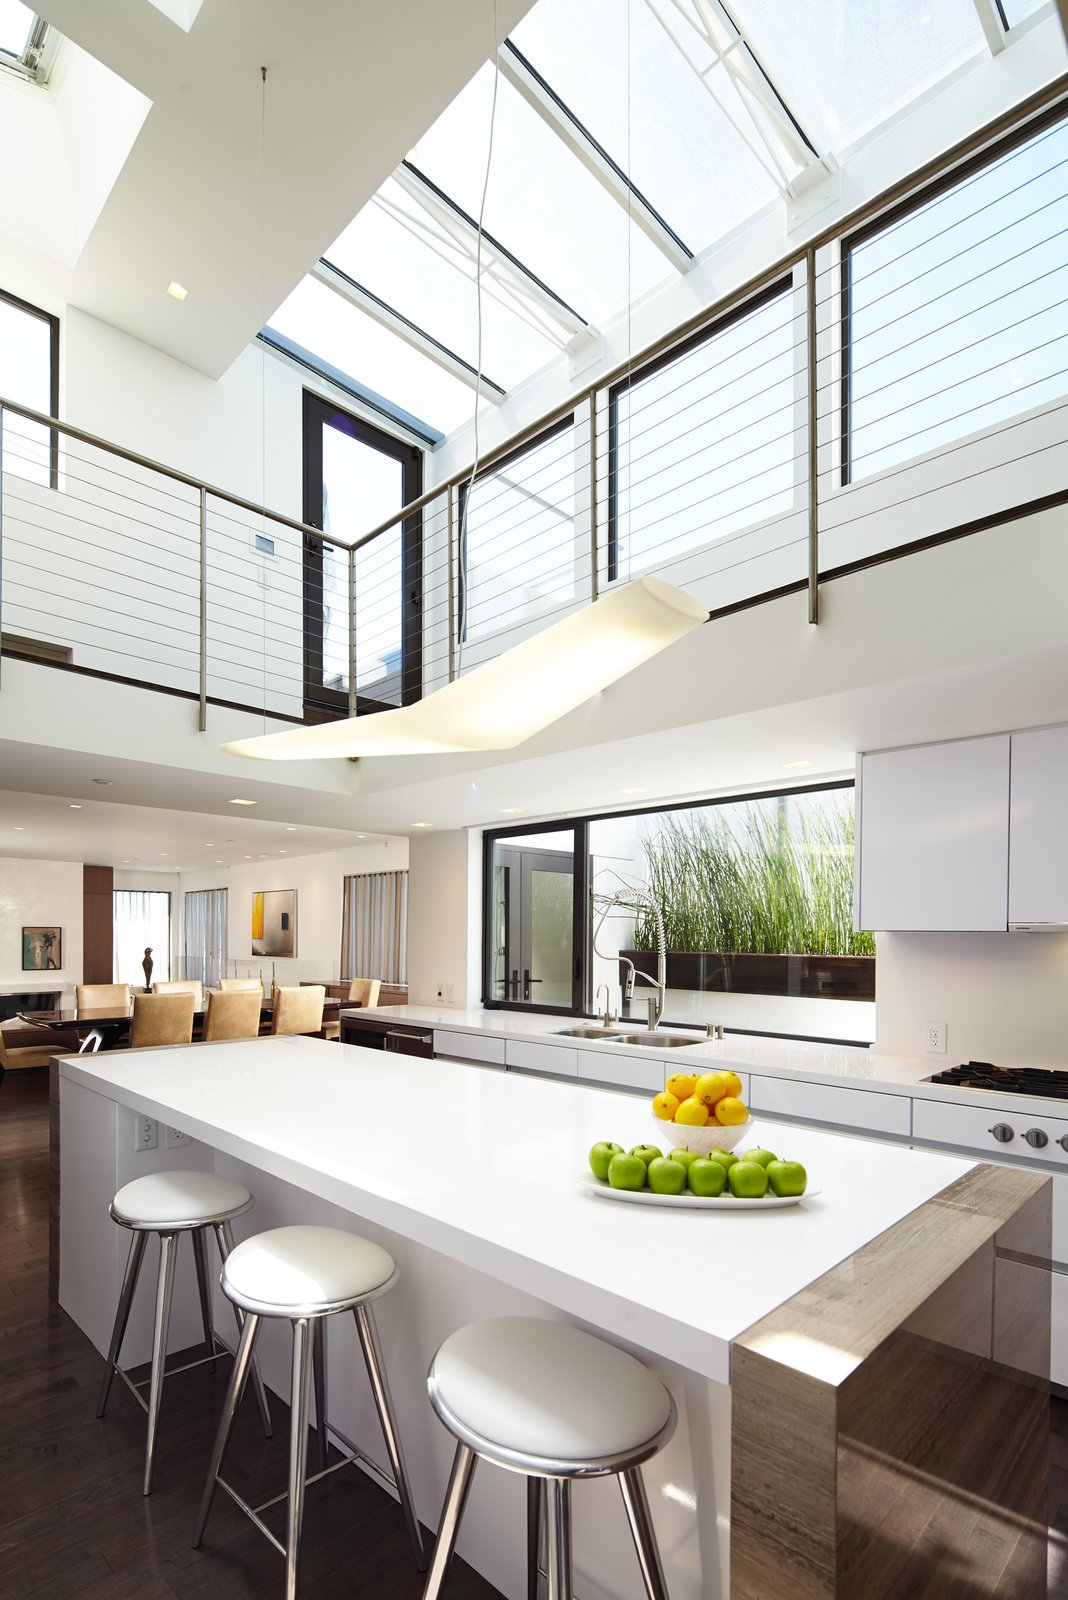 The central two-story kitchen is washed with light from multiple skylights, which also filter into the adjoining living and dining rooms.  Perrin Residence by Abramson Teiger Architects